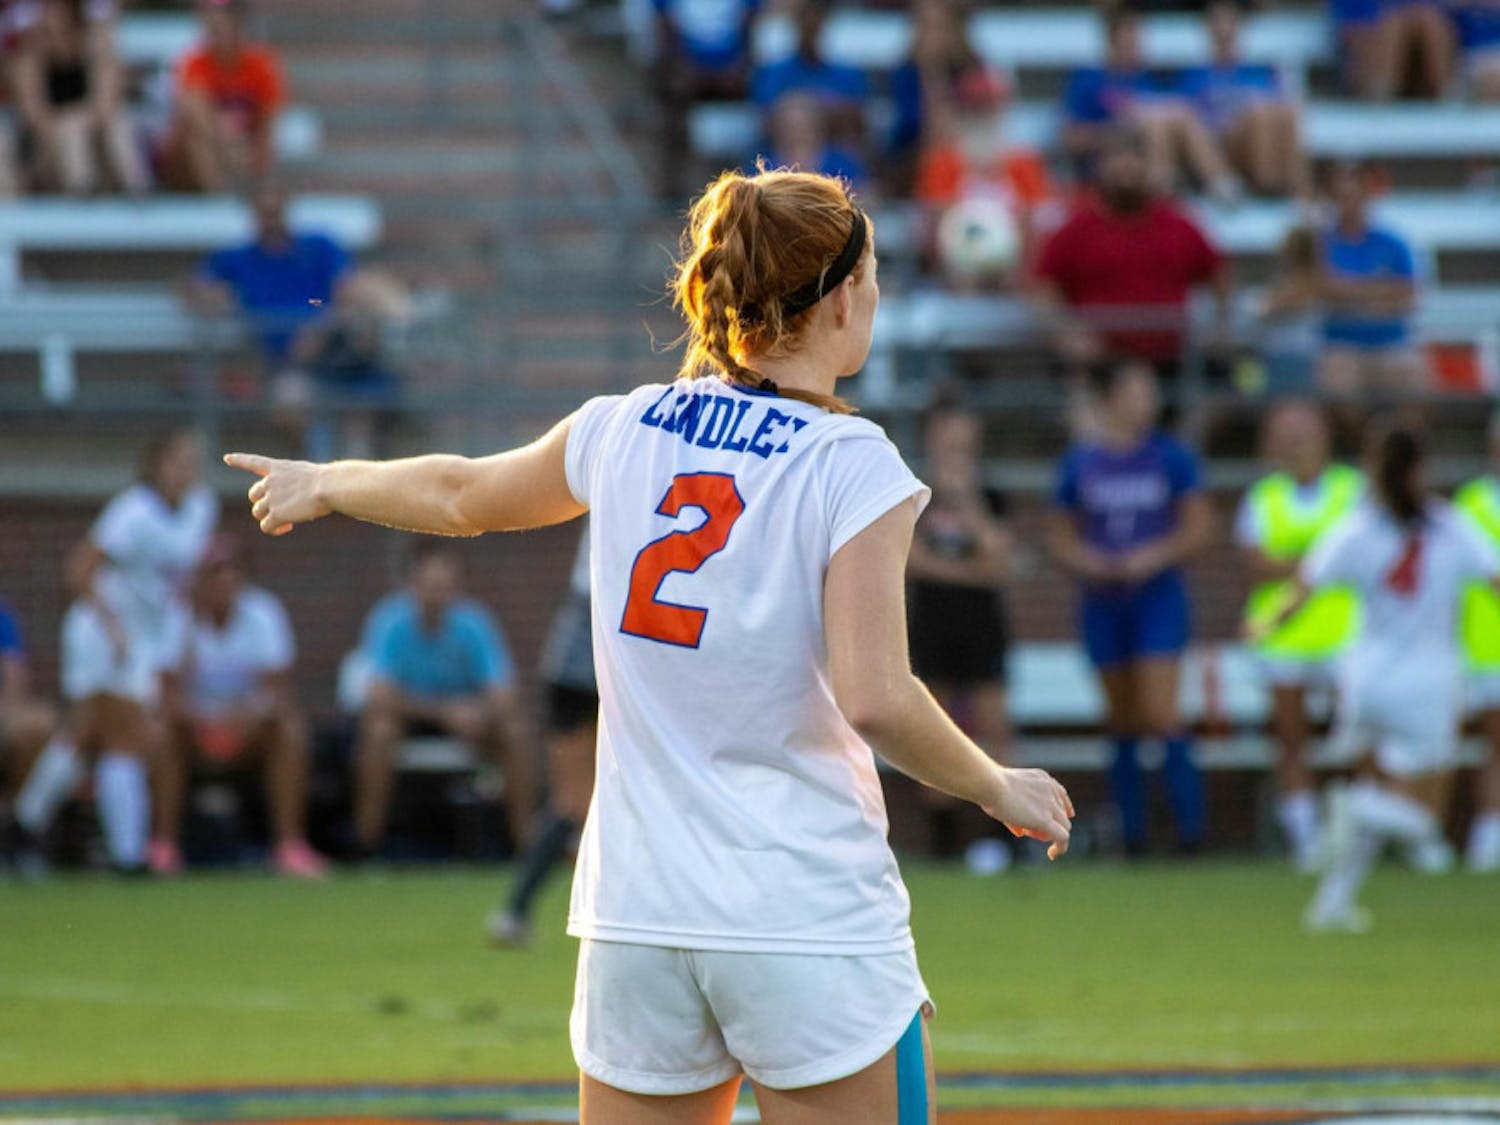 This season's eight-game, conference-only schedule could pose a new challenge for the Gators, as they usually have a healthy out-of-conference schedule to prepare for SEC play.